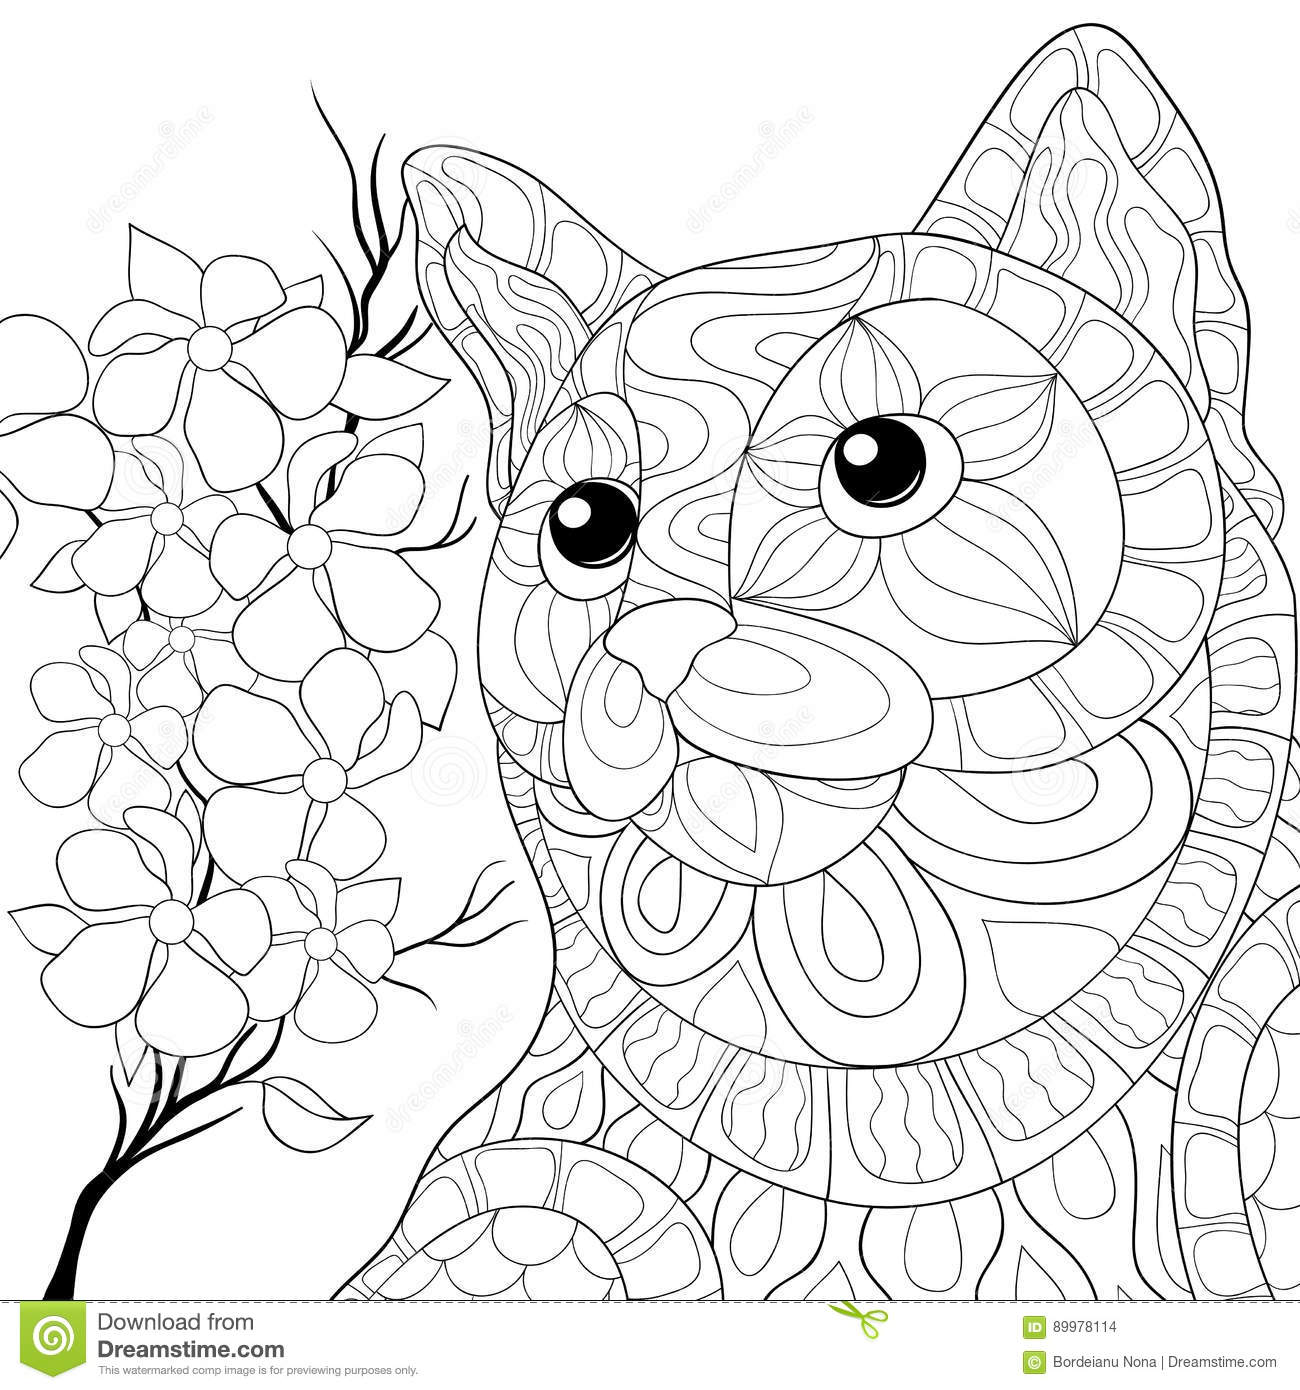 Download Adult Coloring Page Horse Stock Vector Illustration Of Flower